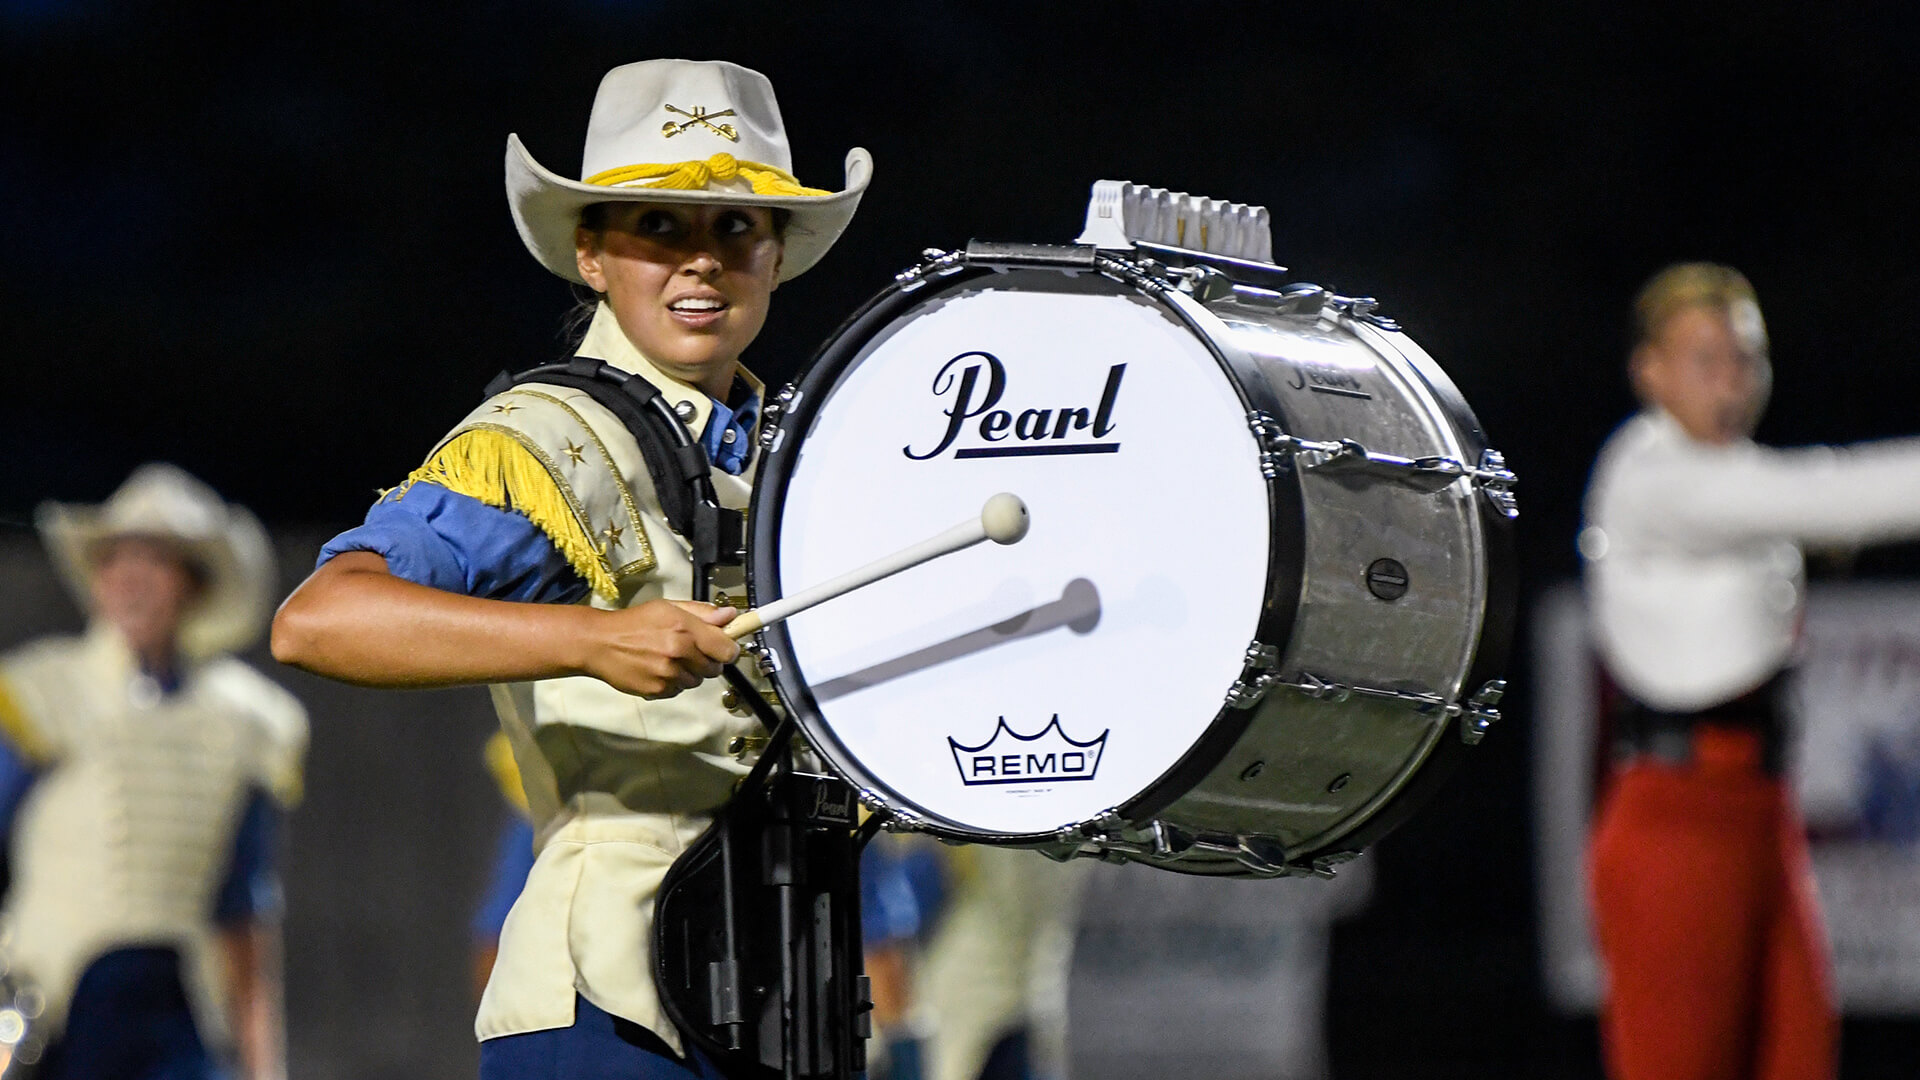 DCI Tour will return to El Dorado, Kansas in July